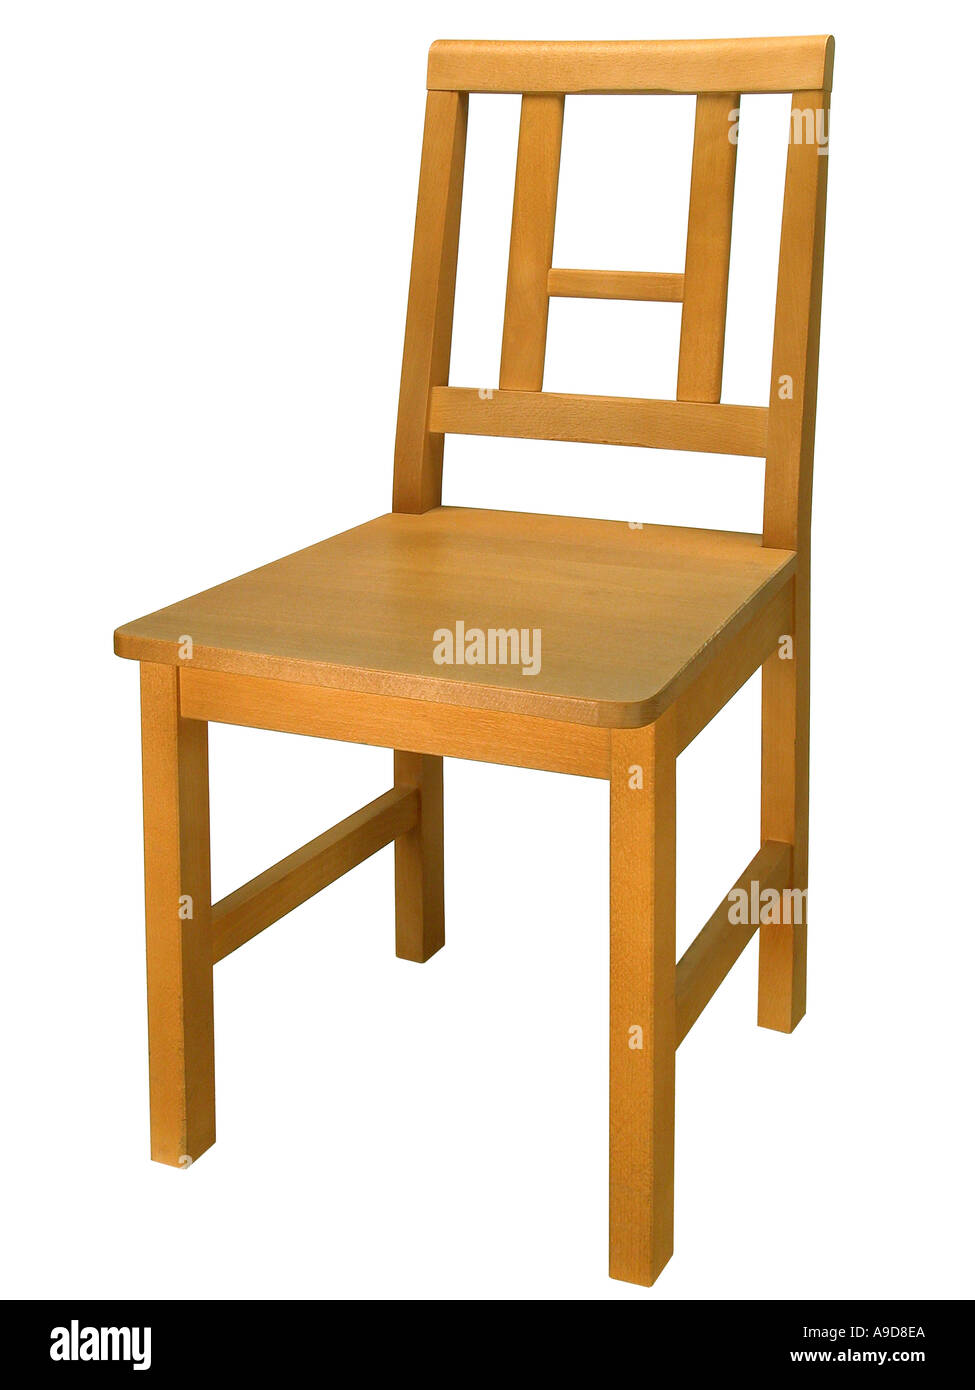 Simple Wooden Chair ~ Wooden chair wood furniture sit seat simple